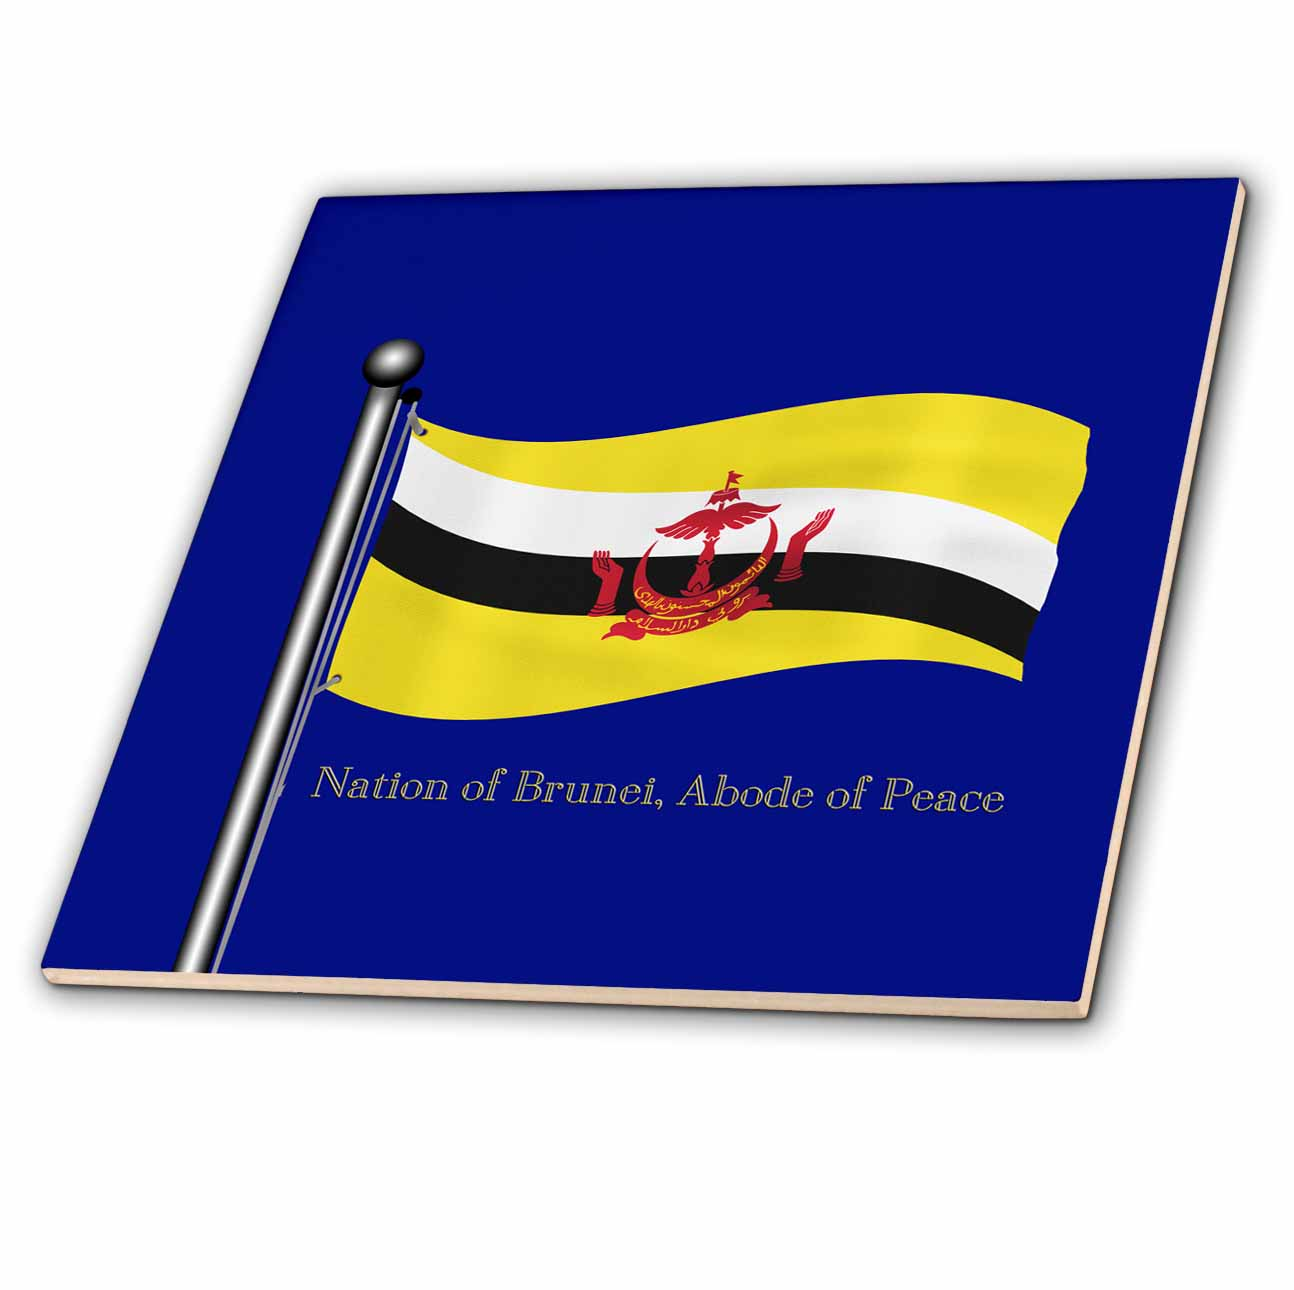 3dRose - 777images Flags and Maps - Asia - Waving flag of the Nation of Brunei, Abode of Peace on a ...